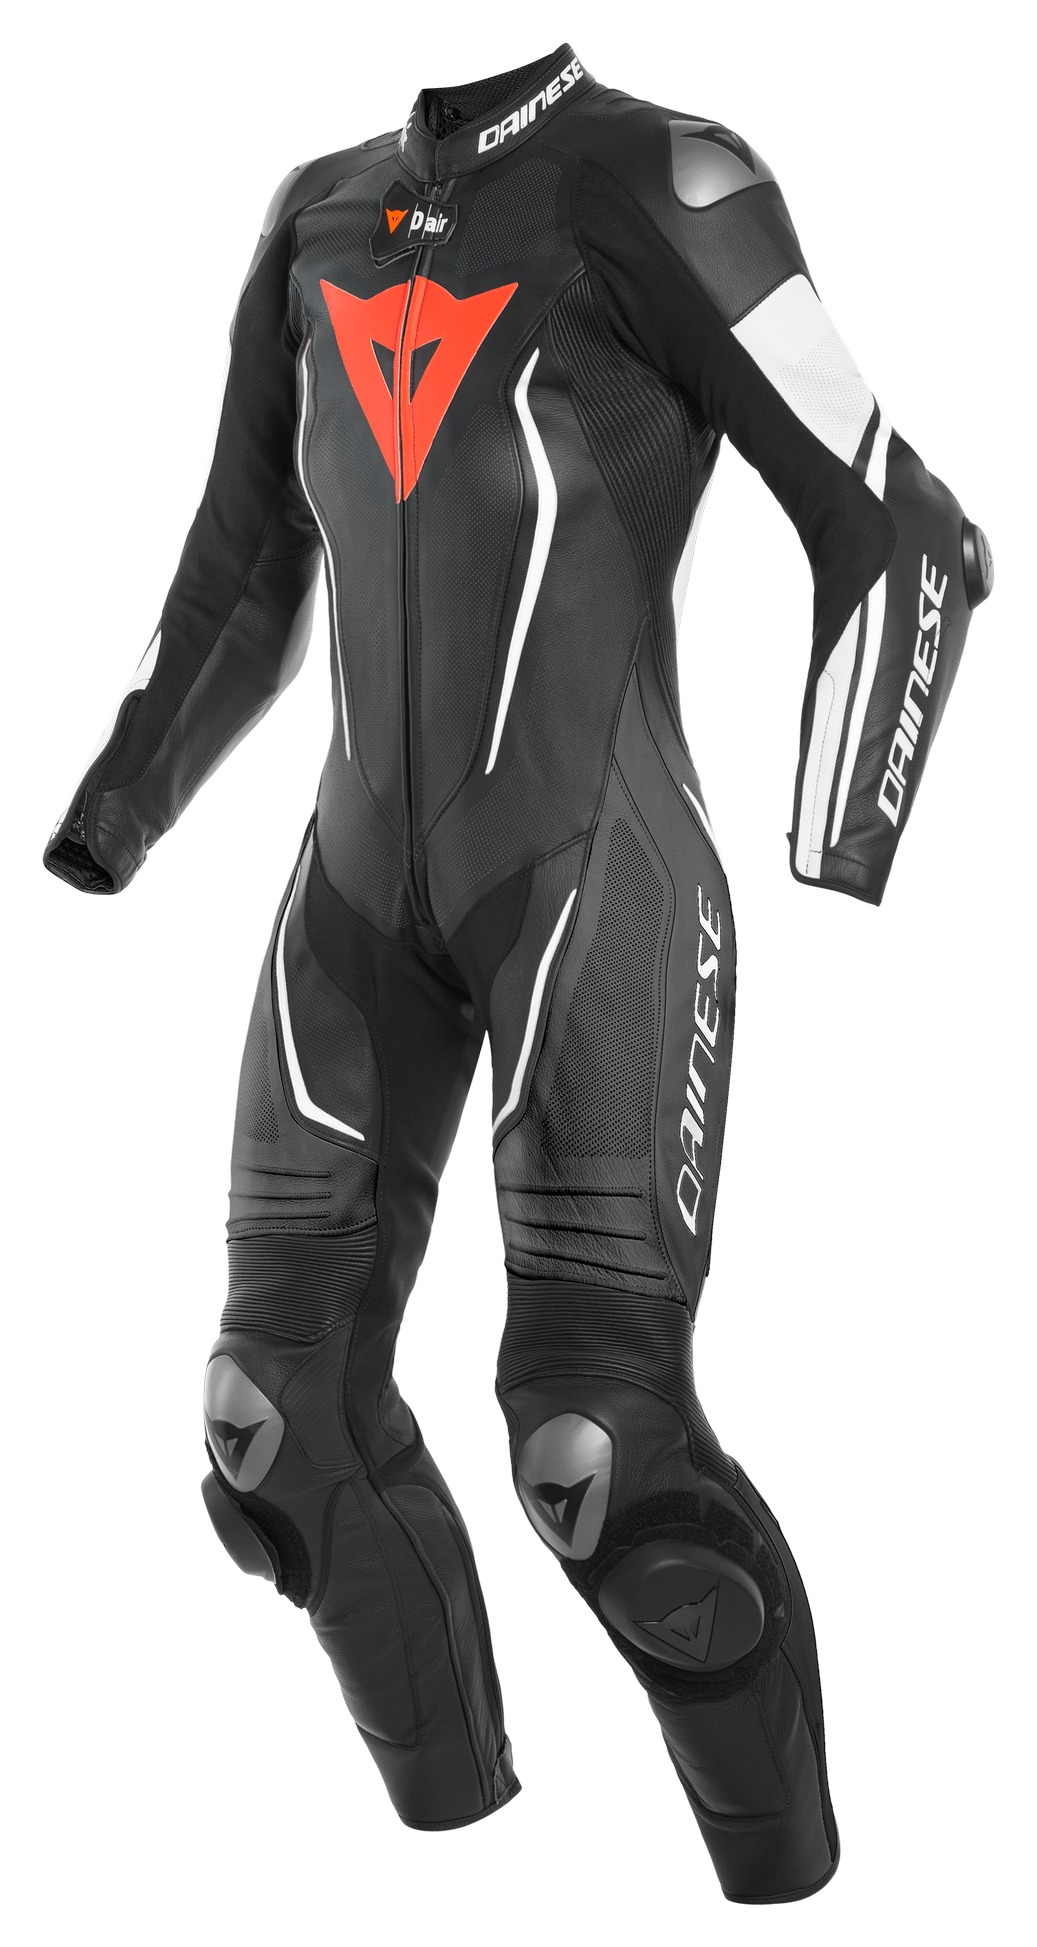 dainese misano 2 d air perforated women 39 s race suit. Black Bedroom Furniture Sets. Home Design Ideas